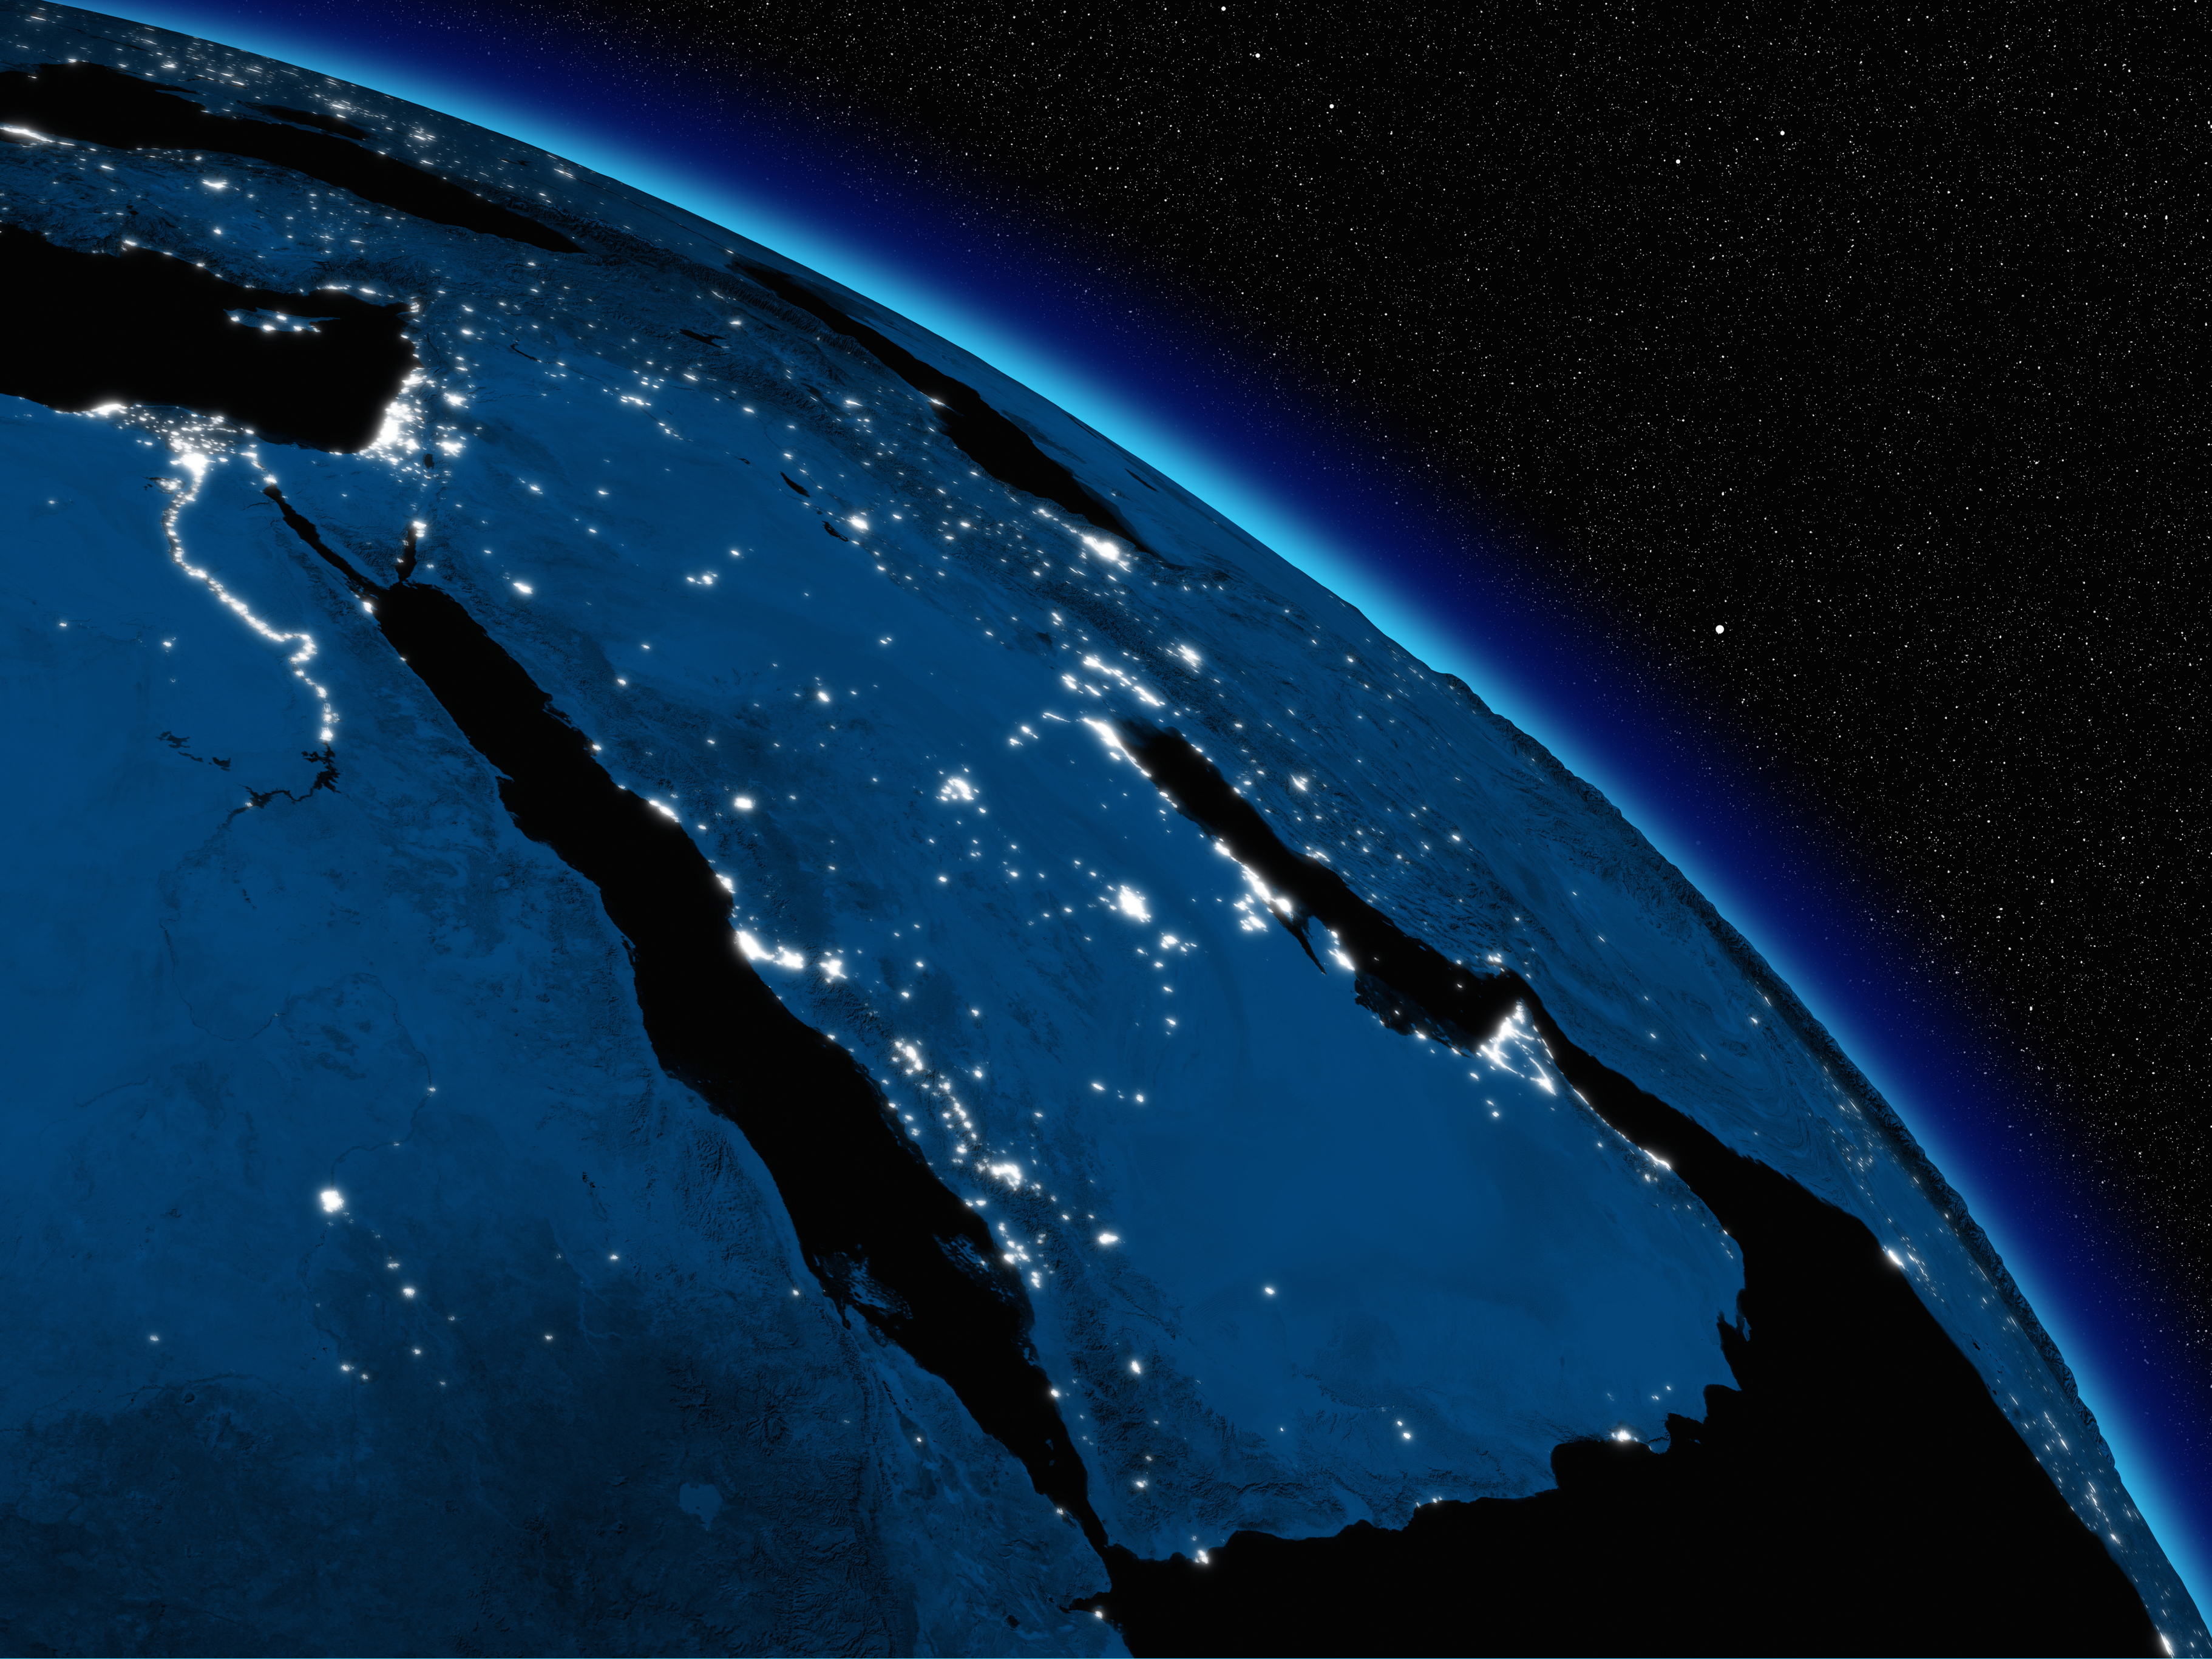 Arabian peninsula at night on planet Earth viewed from space. Highly detailed planet surface with city lights. Elements of this image furnished by NASA.